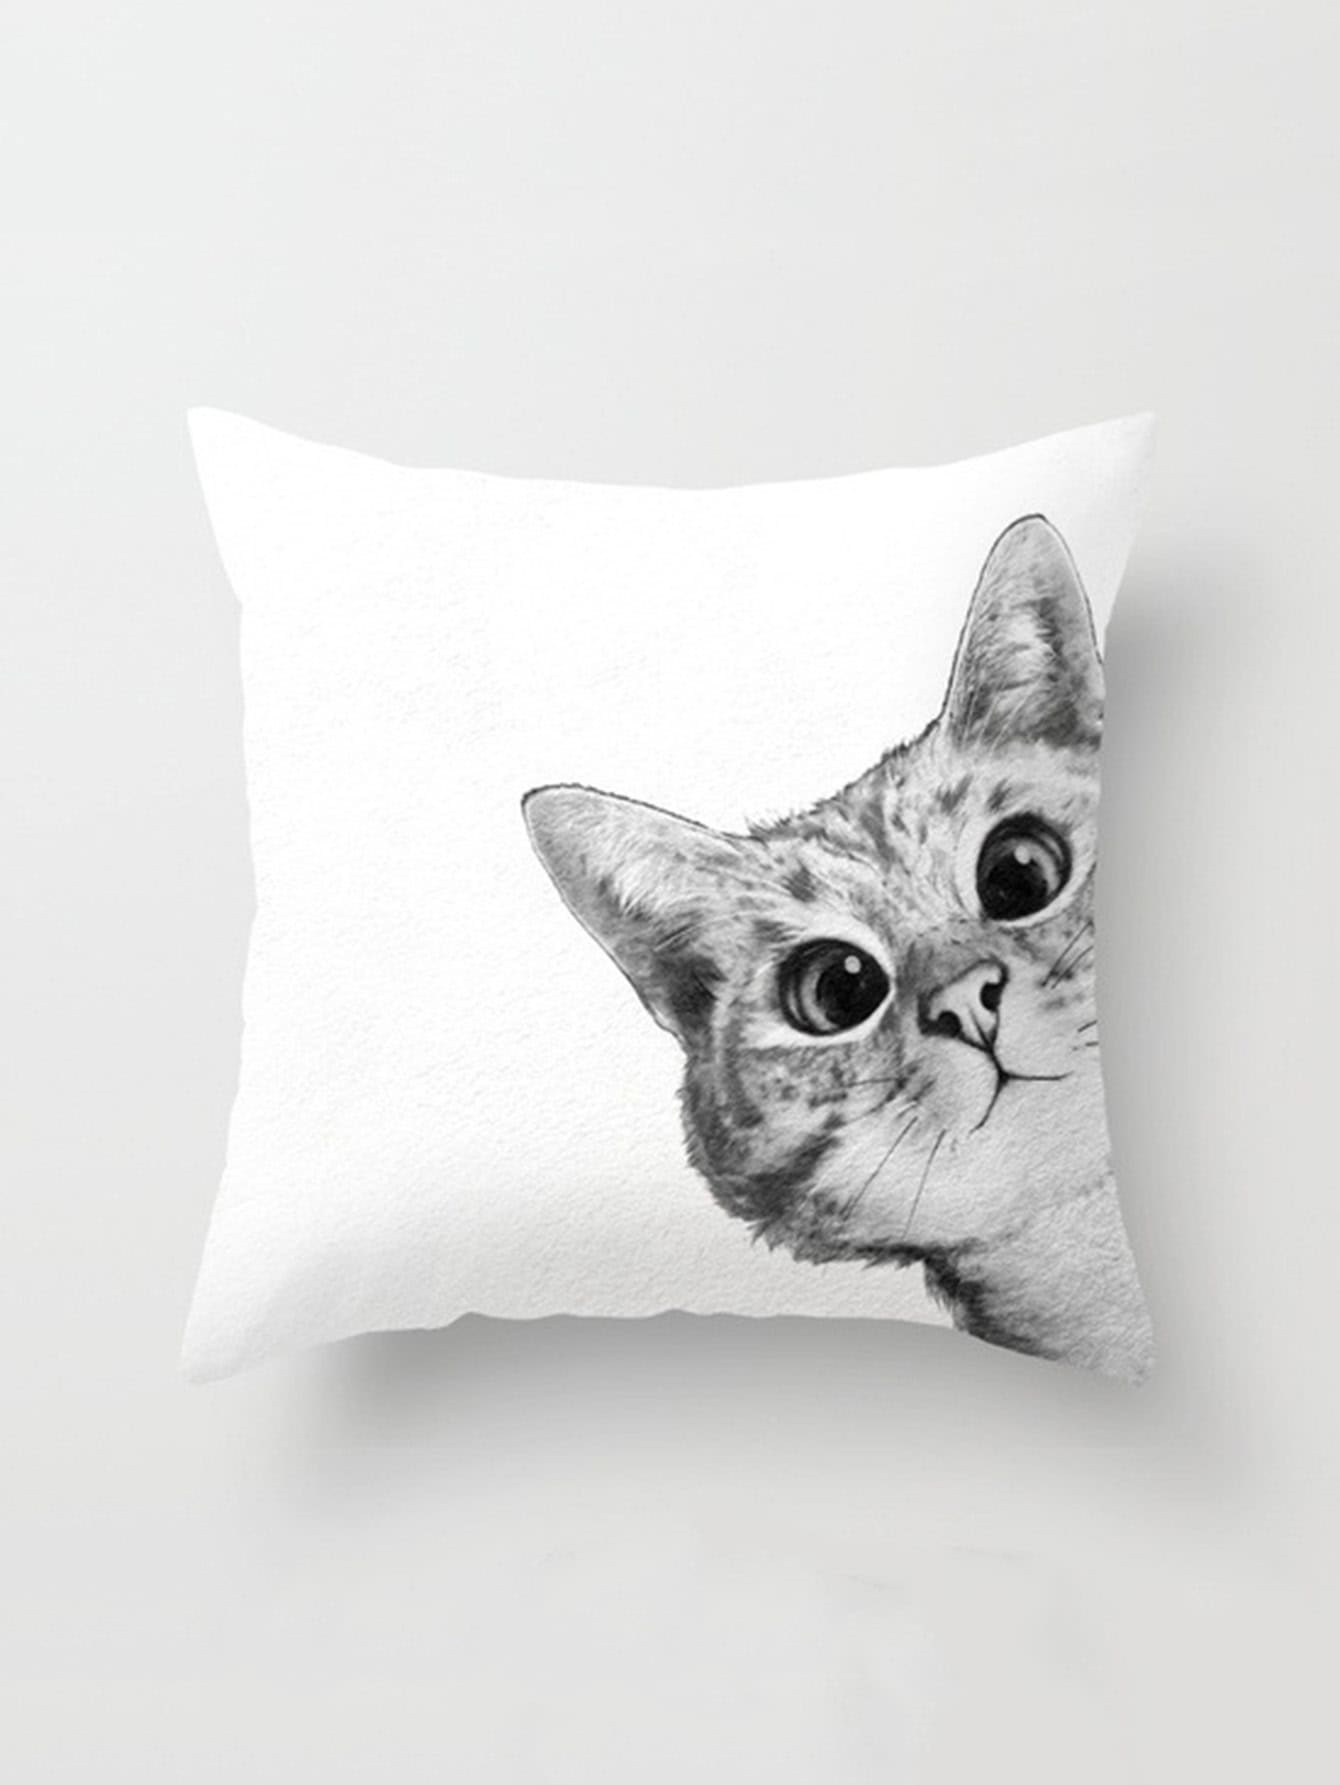 Cat Print Pillowcase Cover pug print pillowcase cover